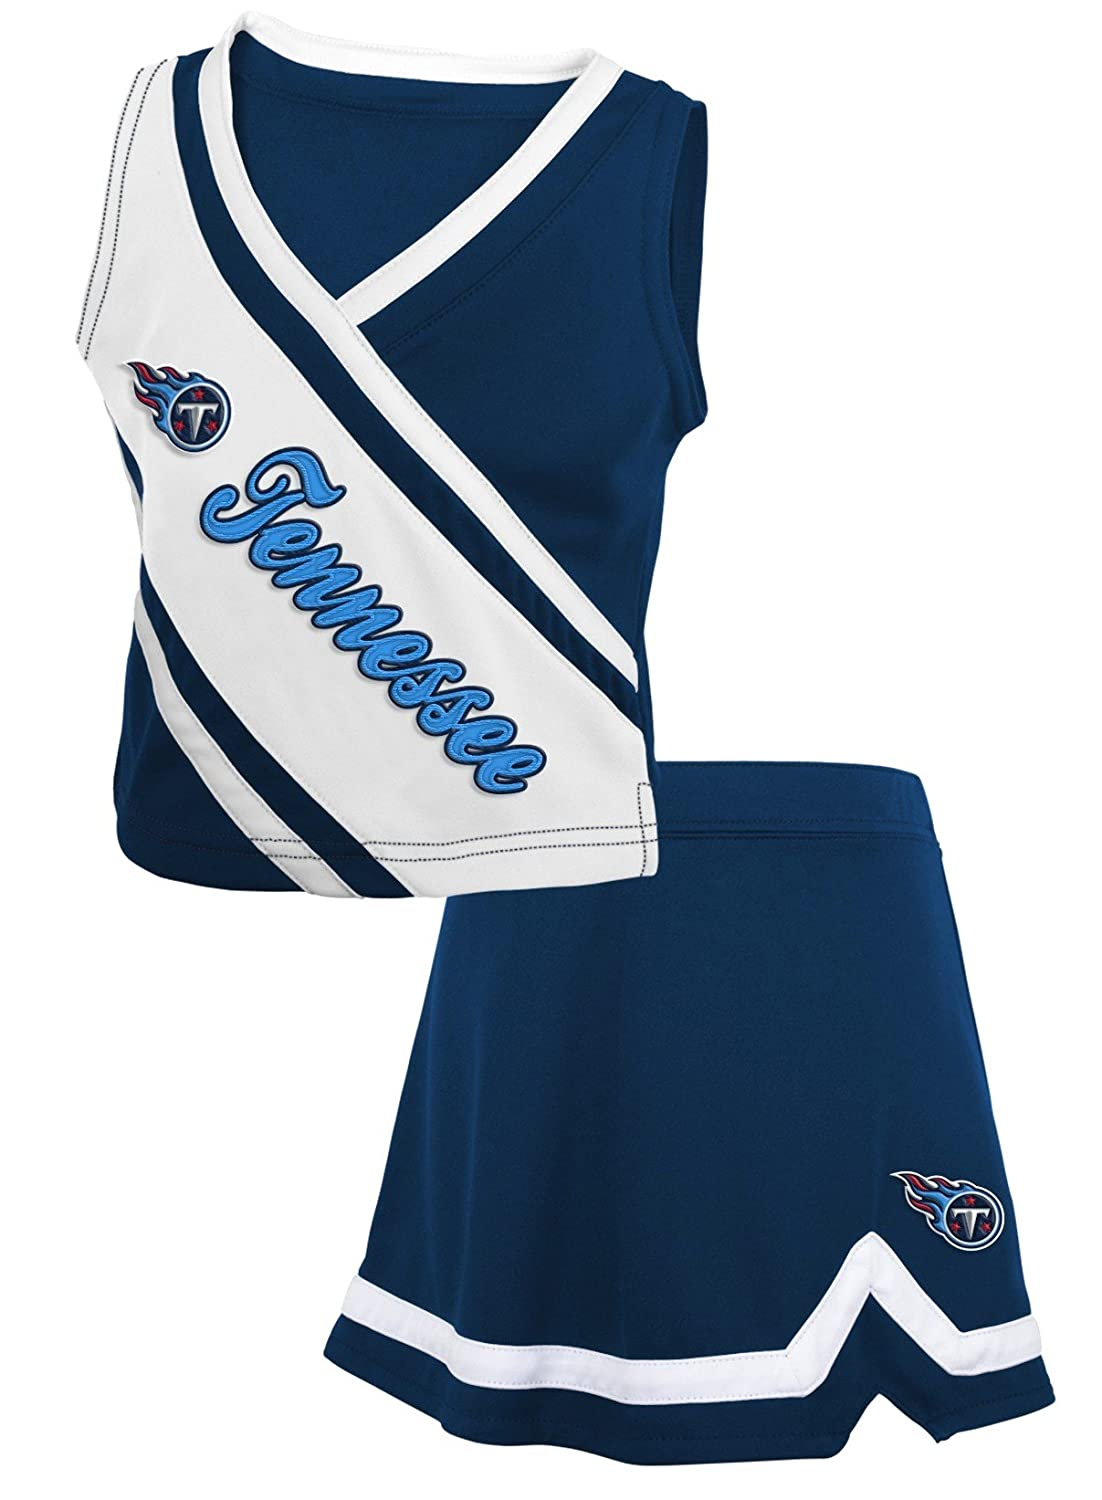 a47c476a Tennessee Titans NFL Toddler Girls Cheerleader 2 Piece Set